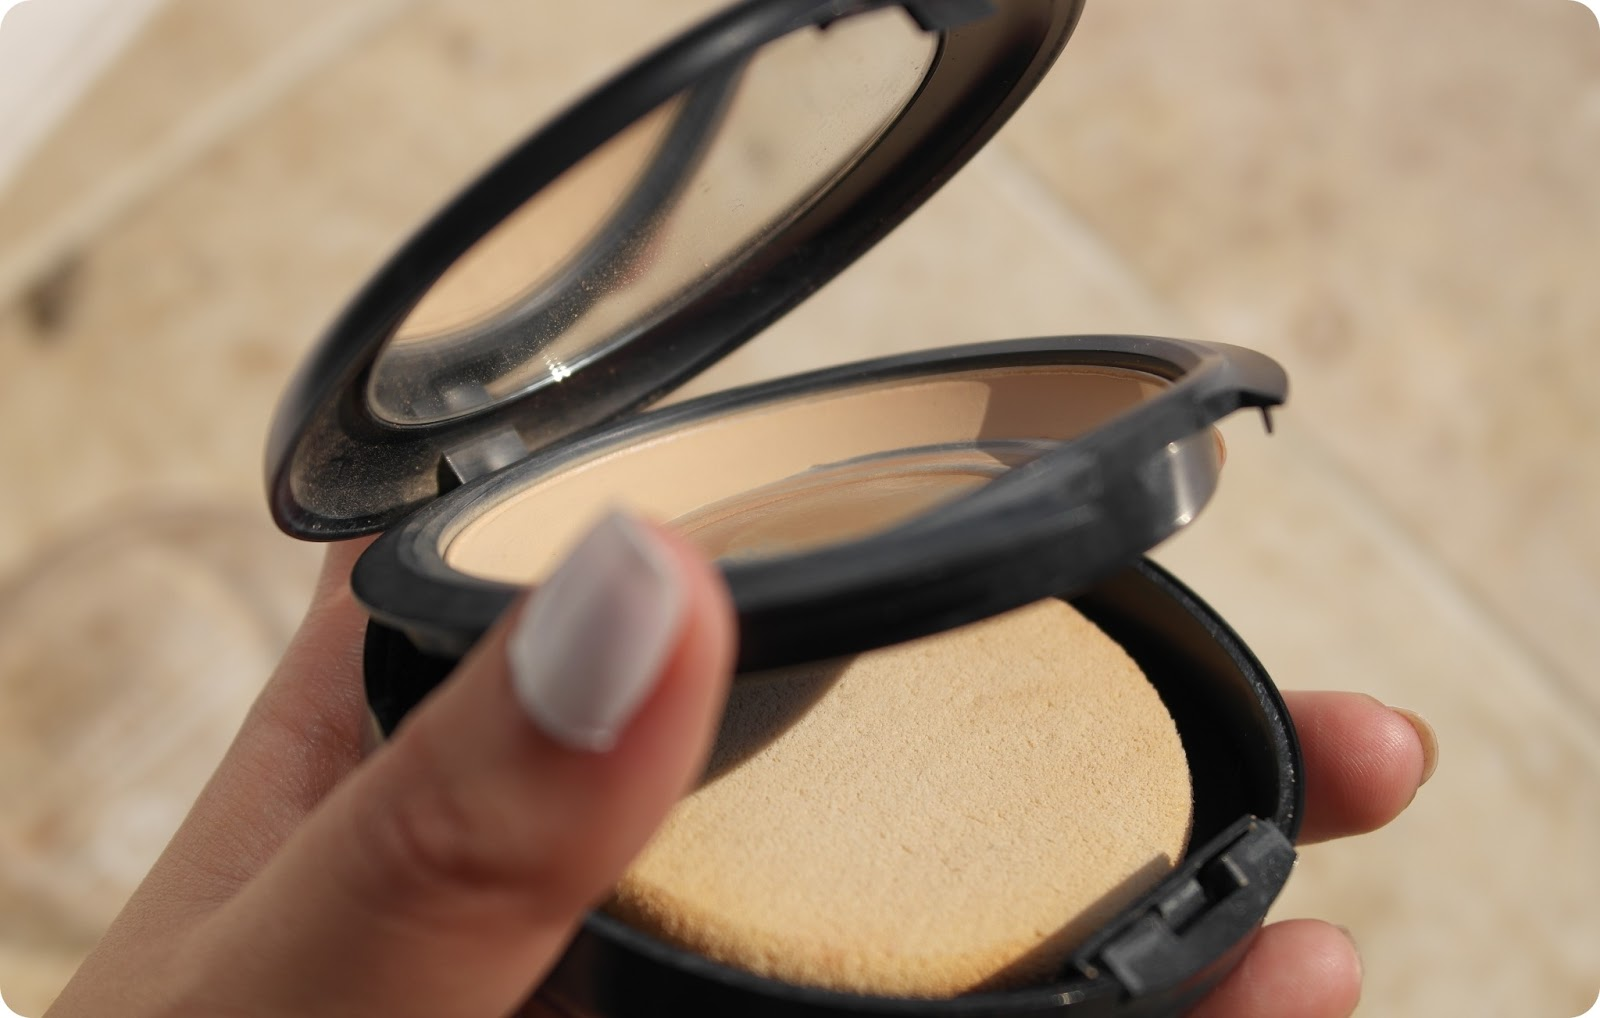 MAC Studio Fix Powder Plus Foundation dupe, review and comparison